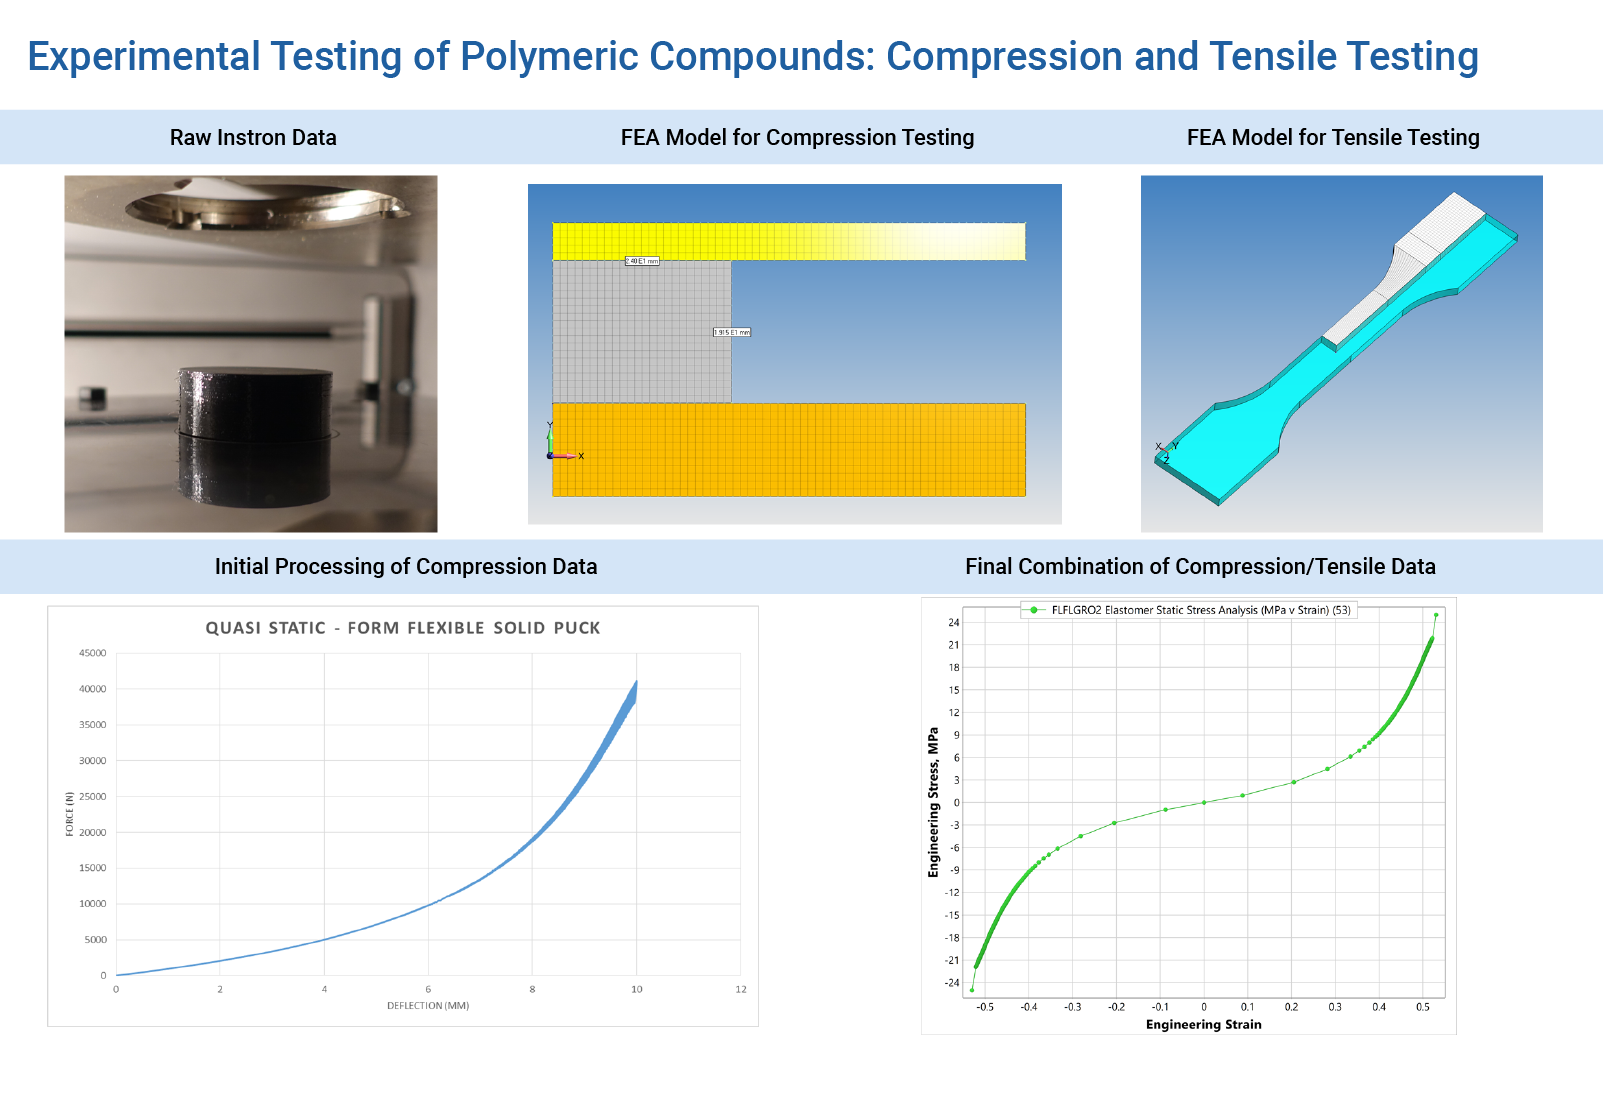 Development of Elastomeric Additive Manufacturing Materials from Mechanical Tests to FEA Verification - FEA Nonlinear Consulting Services